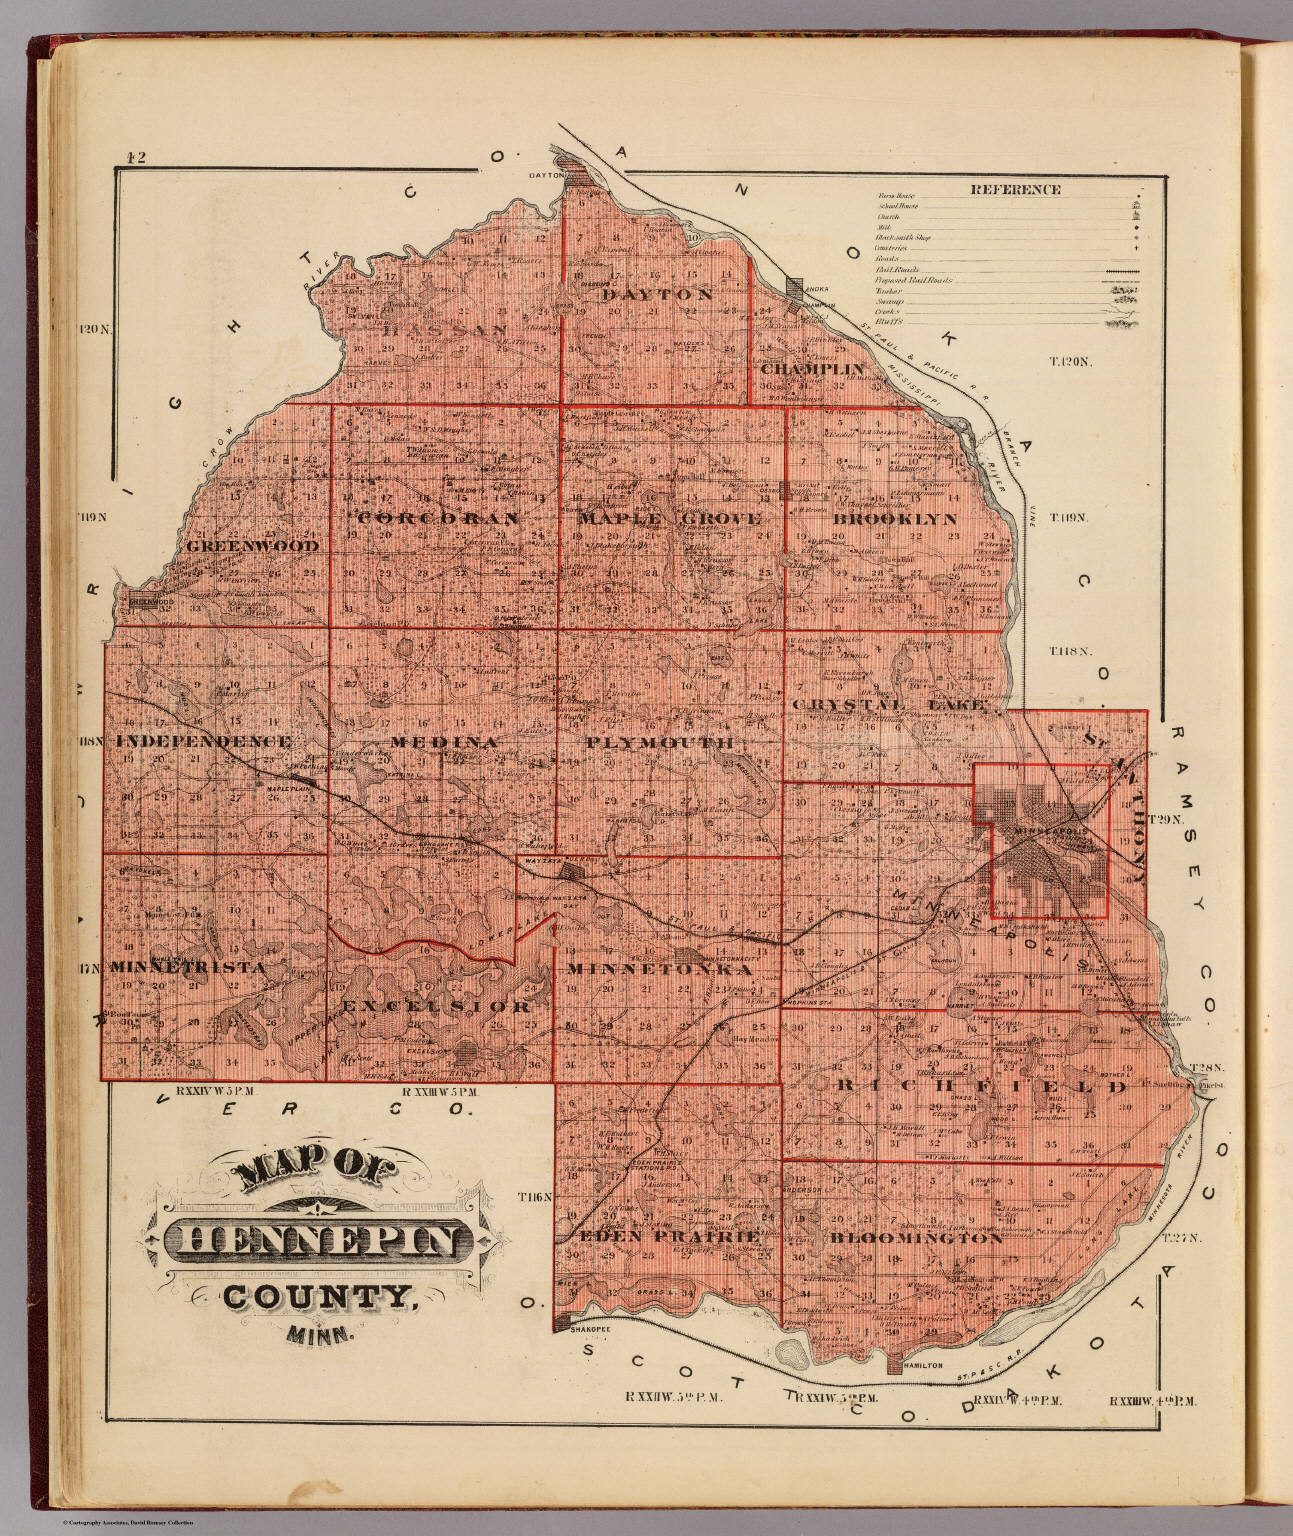 Map Of Hennepin County Minn David Rumsey Historical Map Collection - Minn map